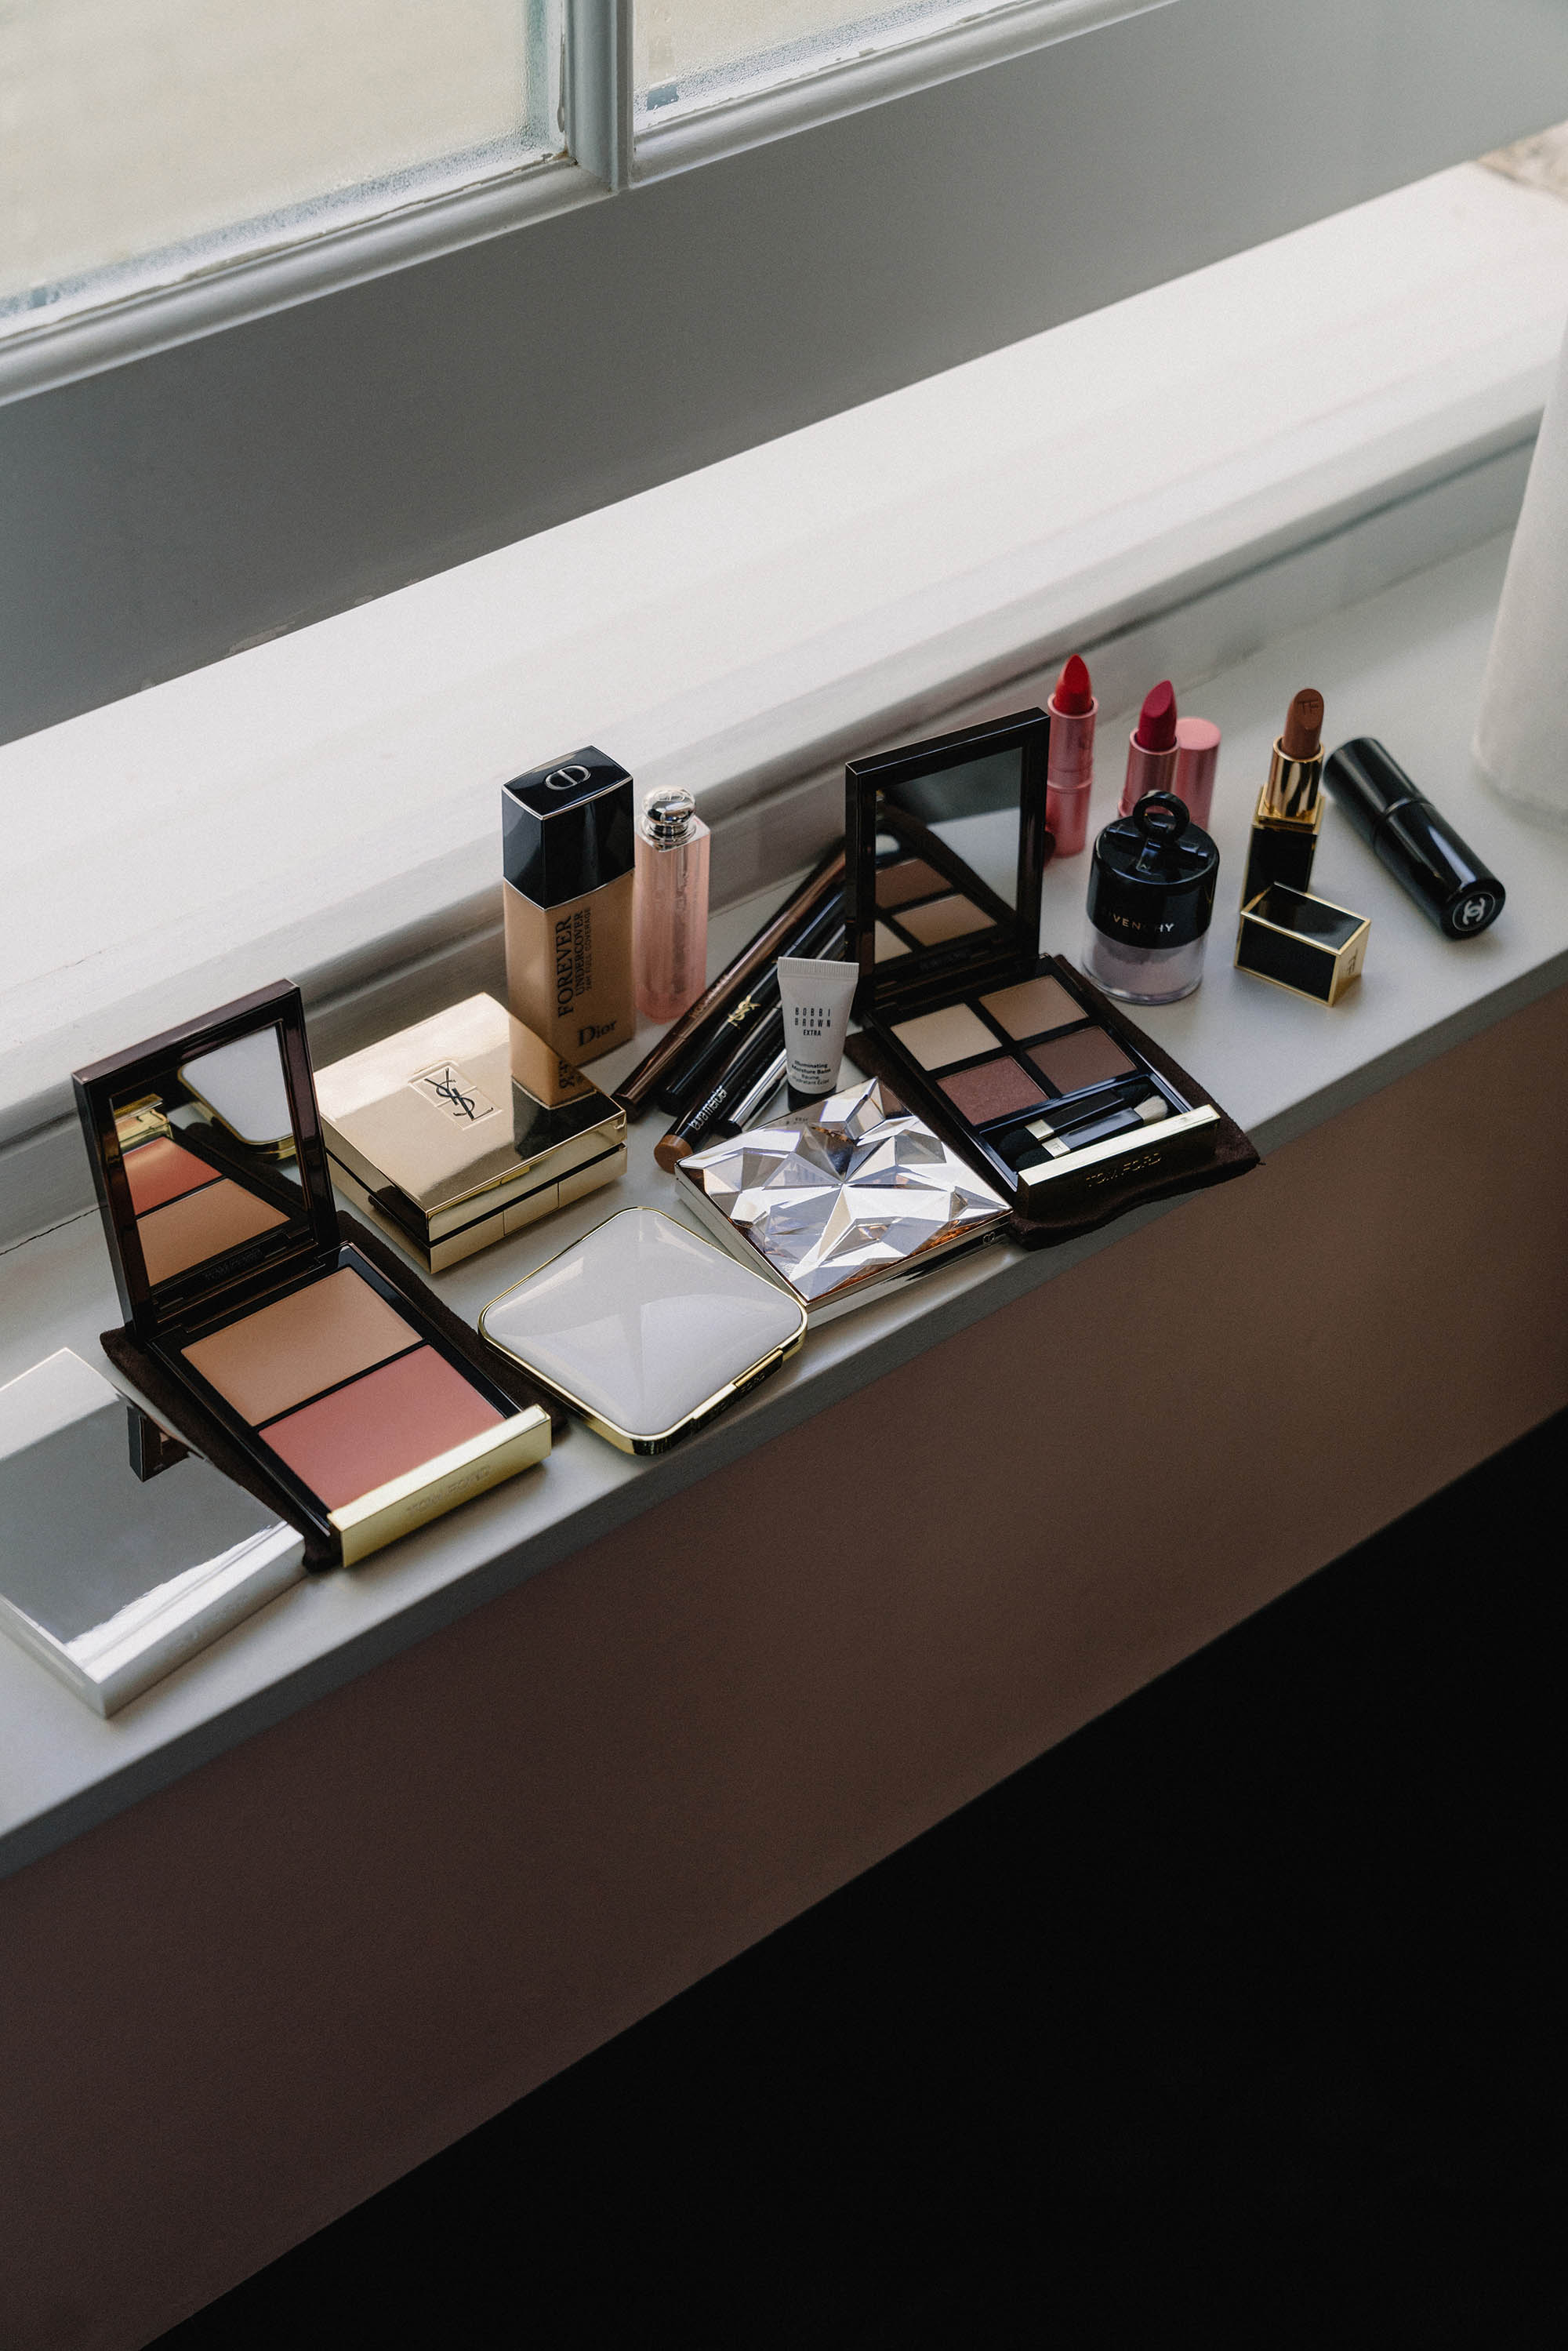 Tom Ford Compact ,  Tom Ford Blush ,  Dior Foundation ,  Dior Lip Glow ,  Bobbi Brown Balm ,  YSL Beauty Cushion Compact ,  Clé de Peau Highlighter ,  Givenchy Powder ,  Lipstick Queen Lipstick ,  Tom Ford Lipstick ,  Chanel Brush